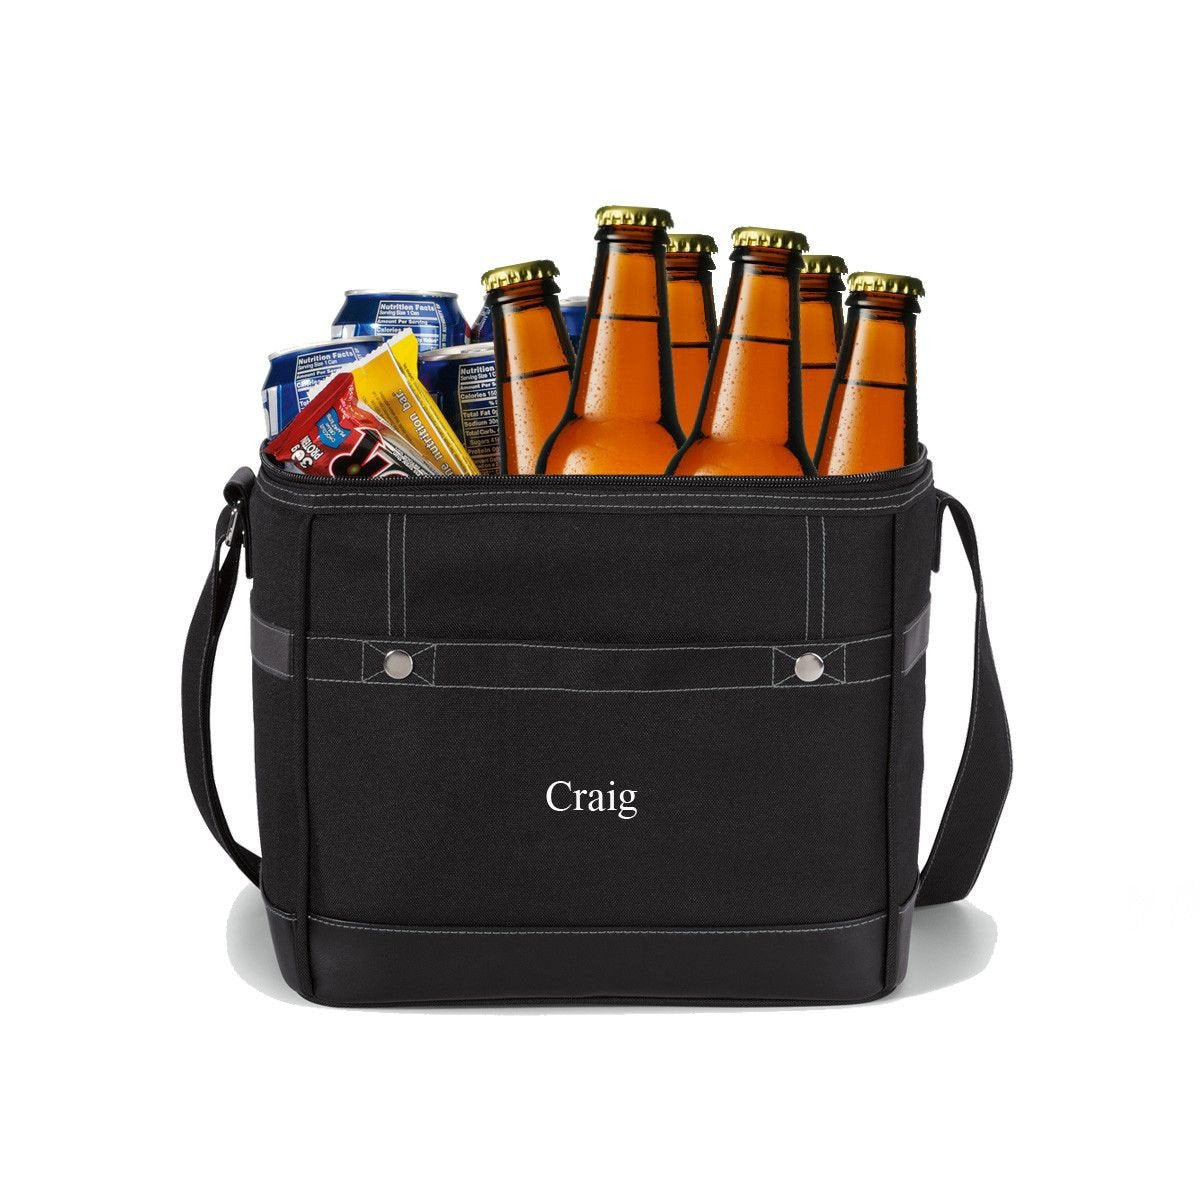 Personalized Trail Cooler - Insulated Cooler Bag Holds 12 Pack